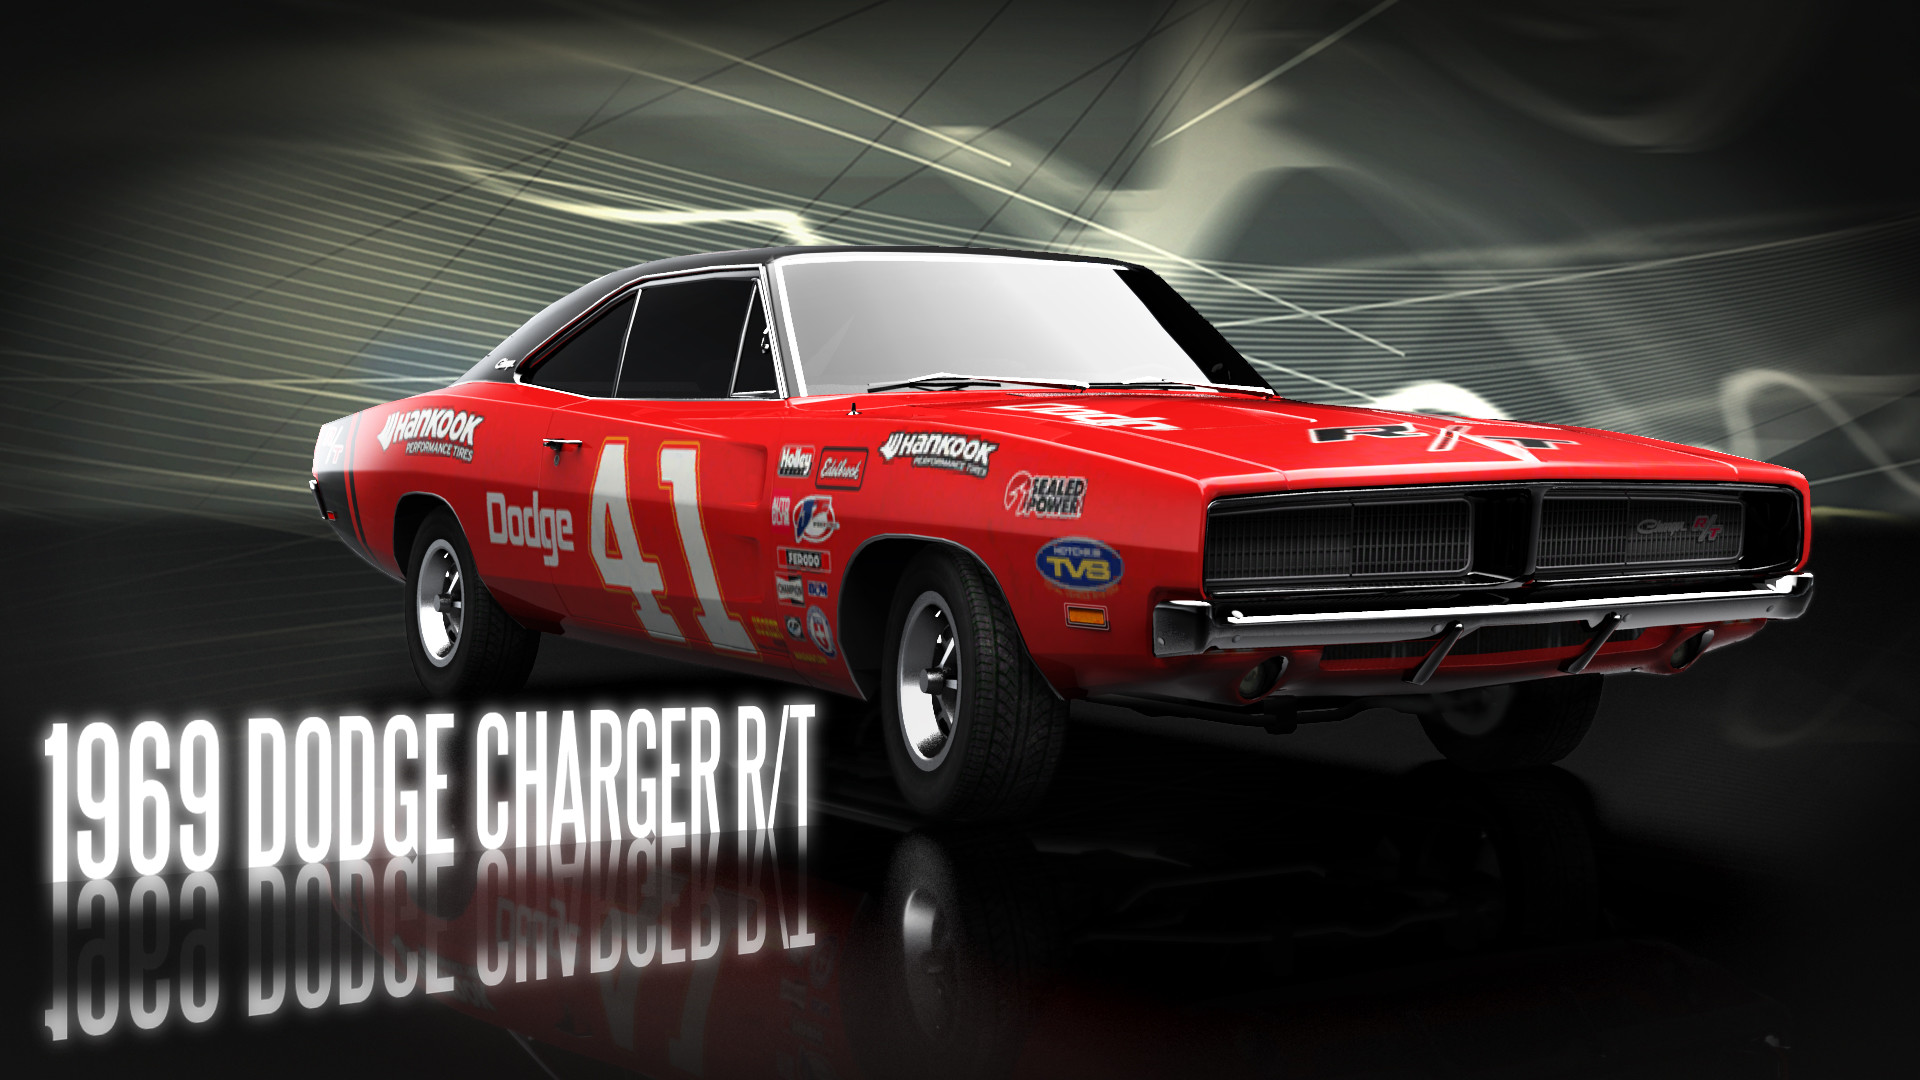 1920x1080 Dodge Charger Rt Wallpaper